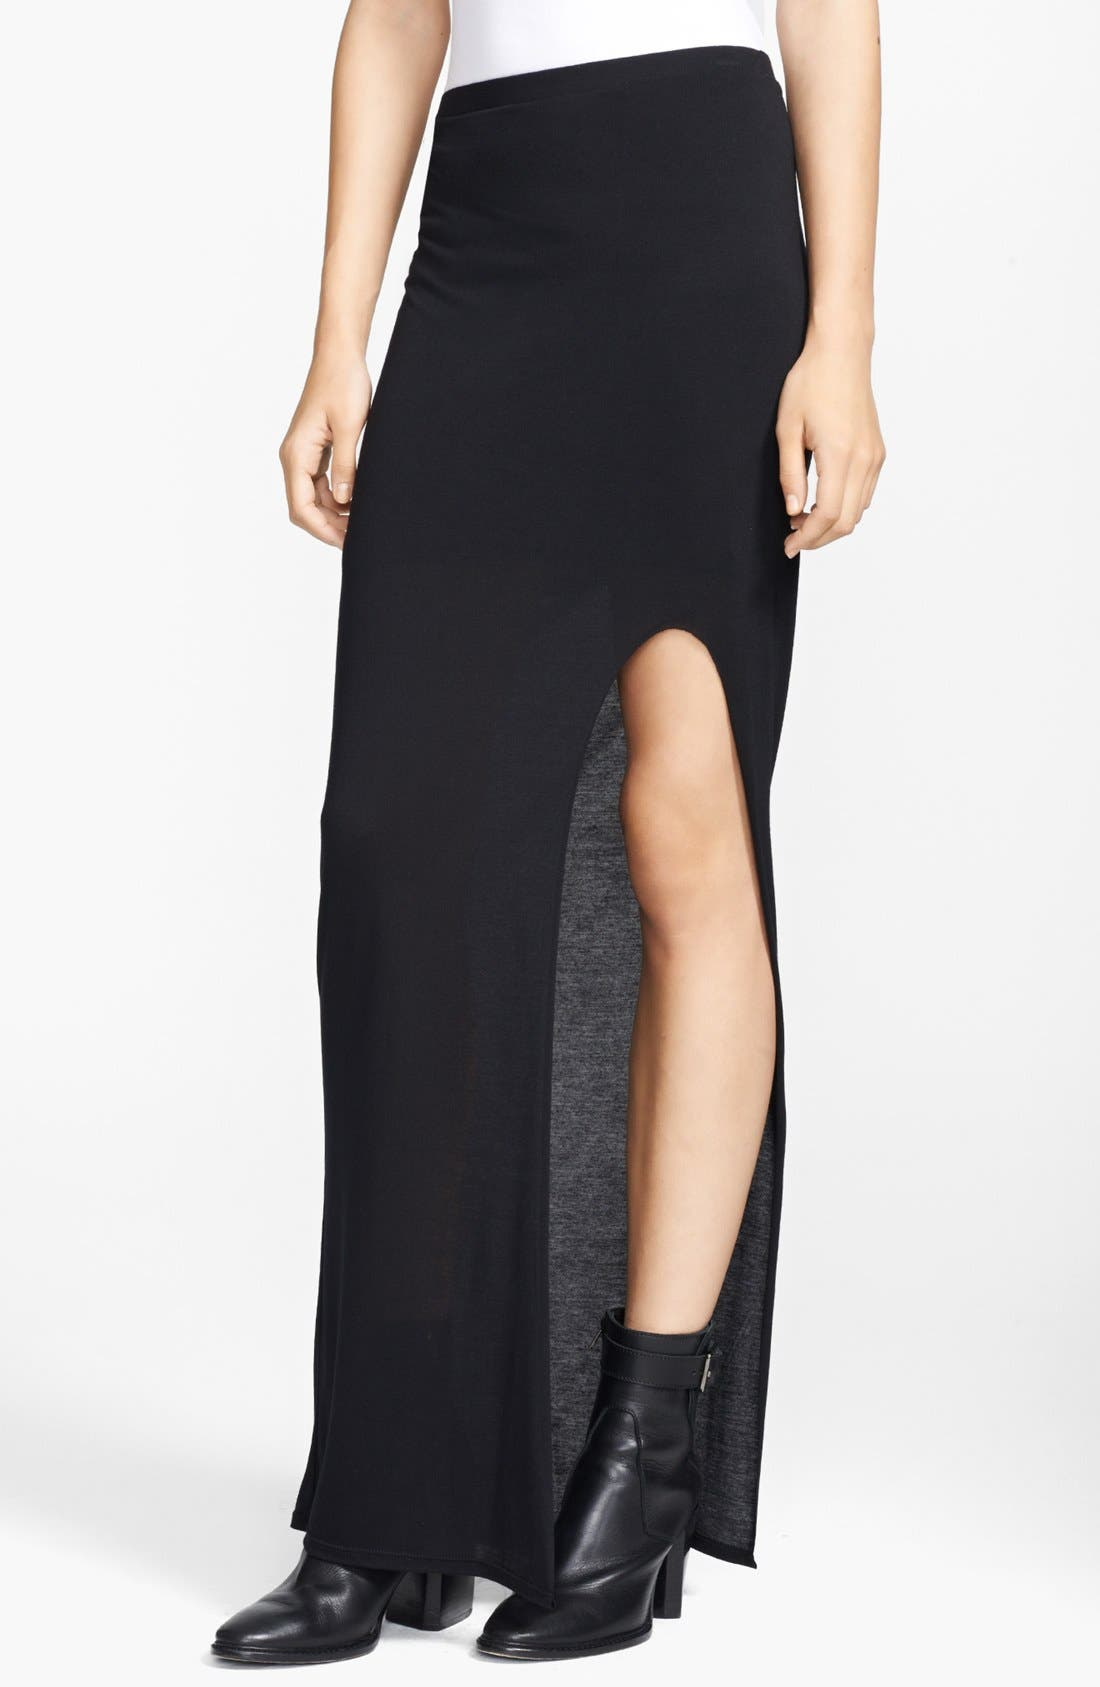 Alternate Image 1 Selected - HELMUT Helmut Lang 'Kinetic' Jersey Maxi Skirt